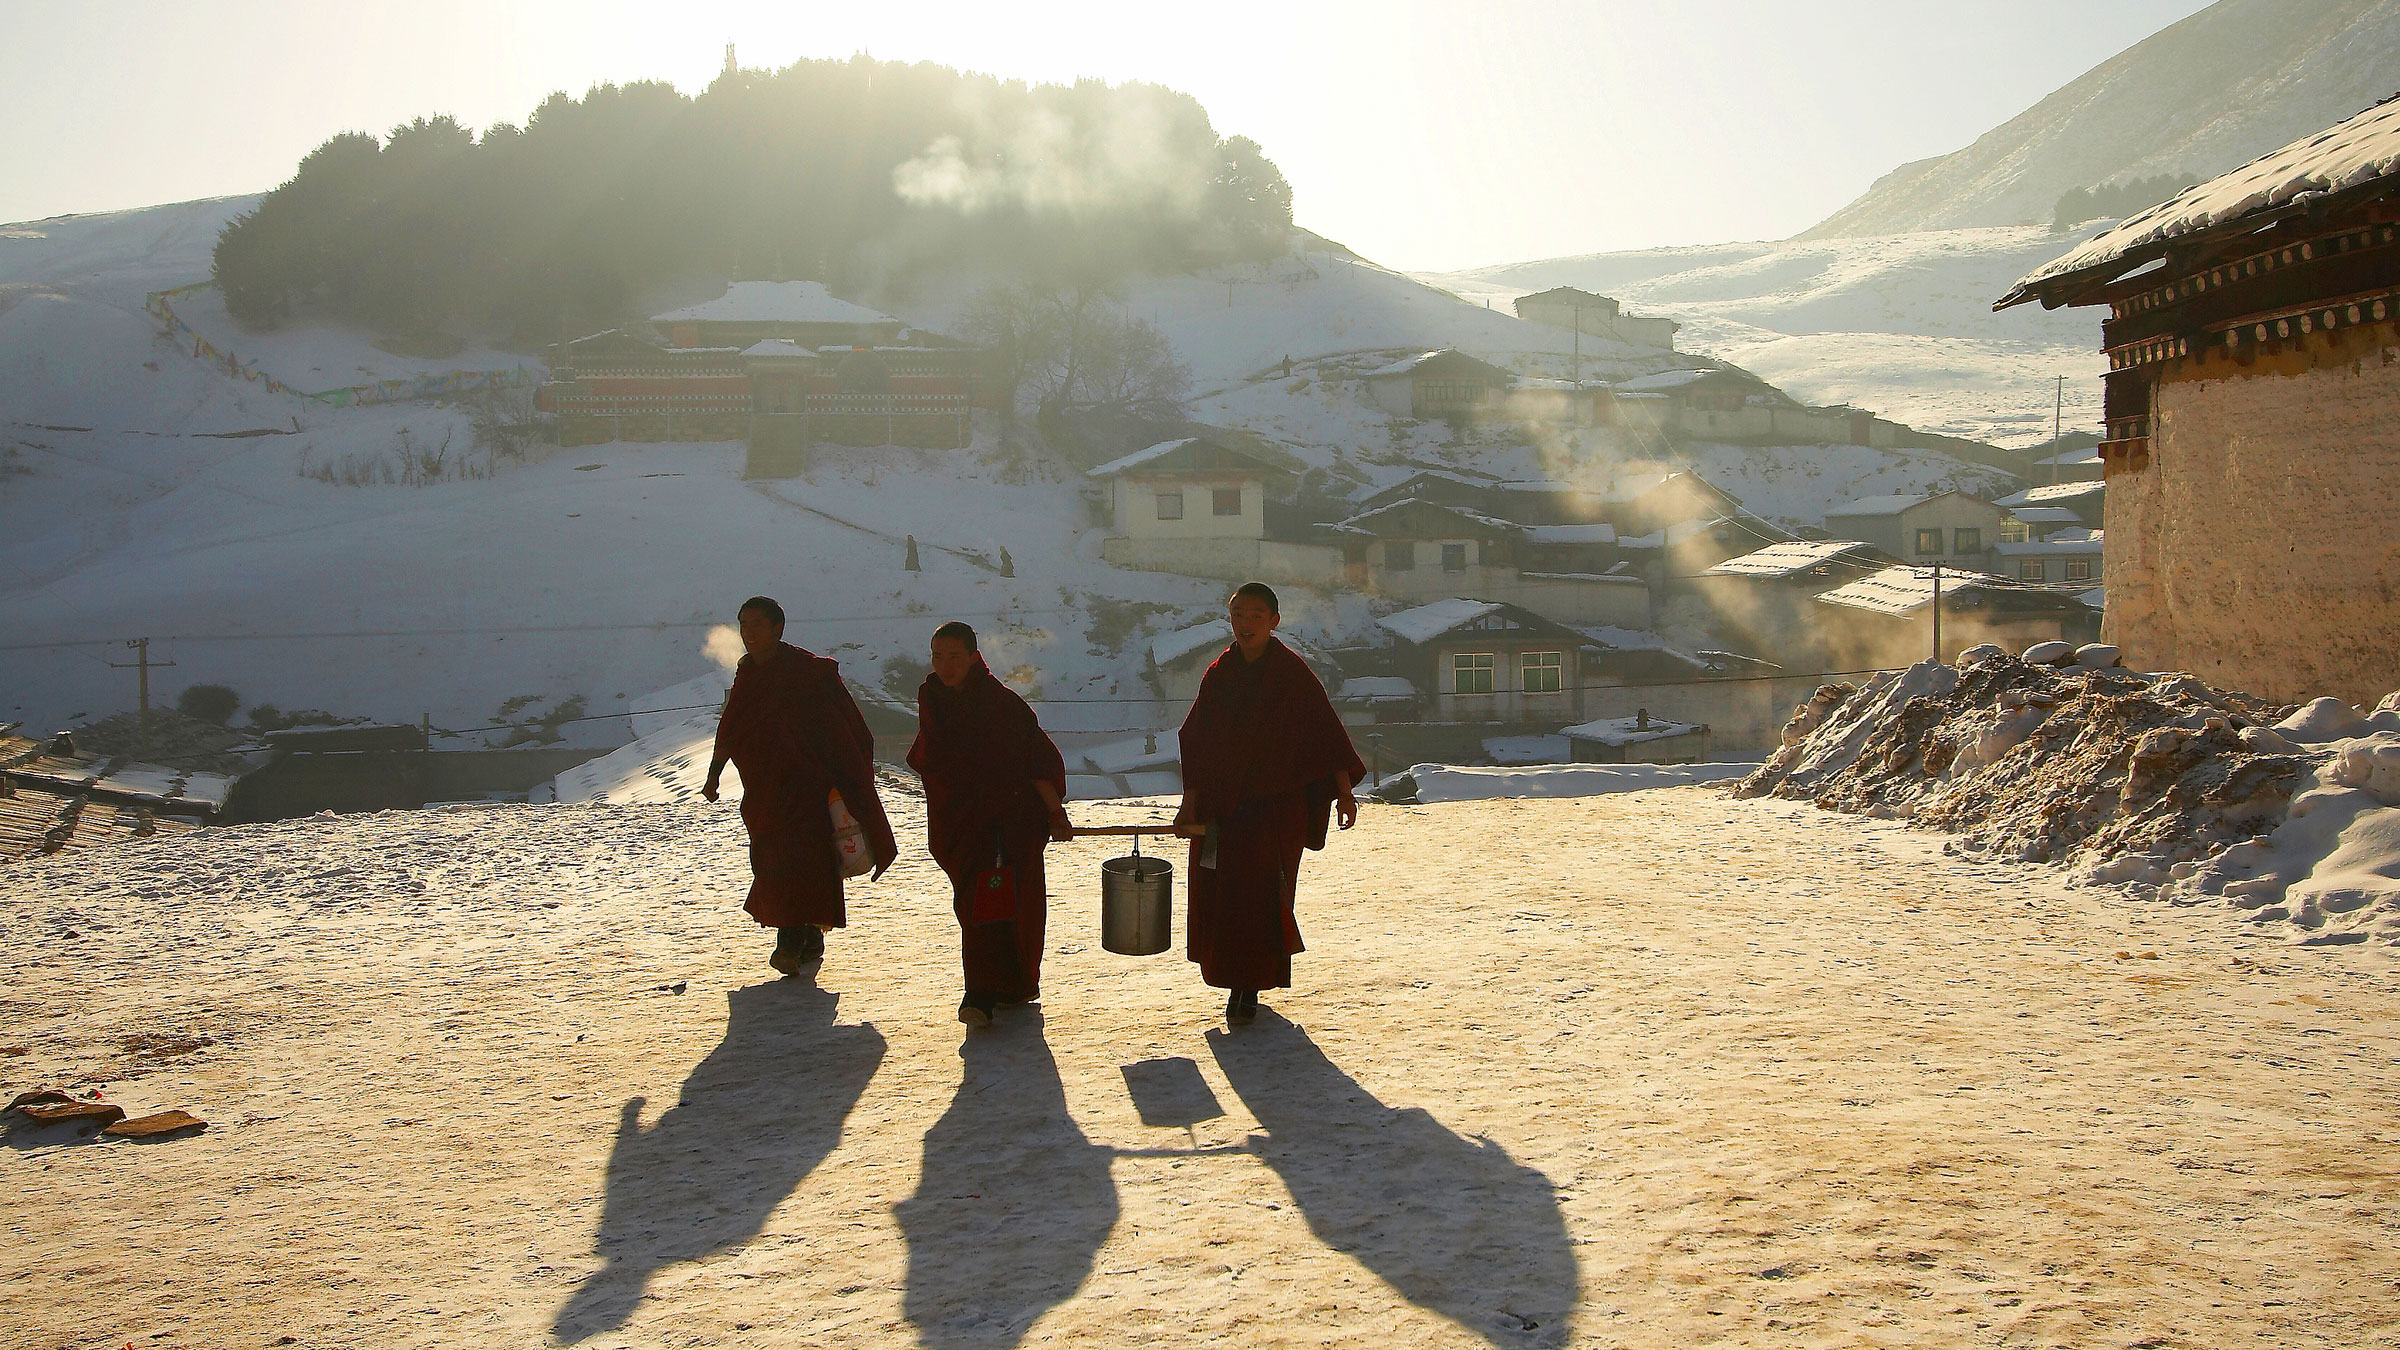 A theme park is planned for Tibet, in one of China's more ridiculous stimulus measures